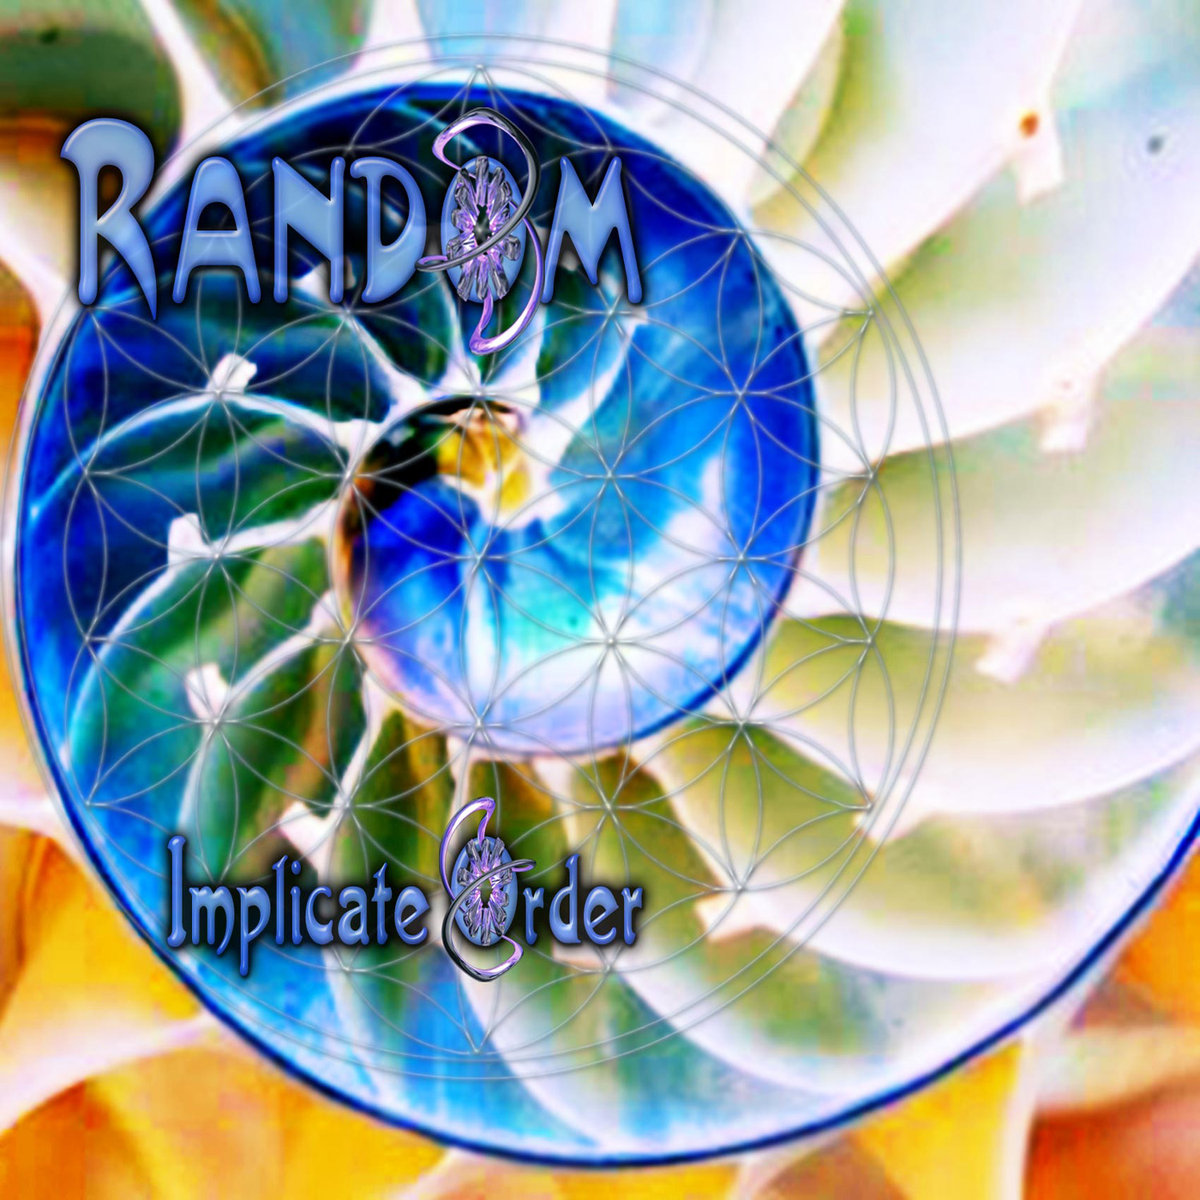 Random feat. Robot - 13 Again remix @ 'The Implicate Order' album (electronic, goa)